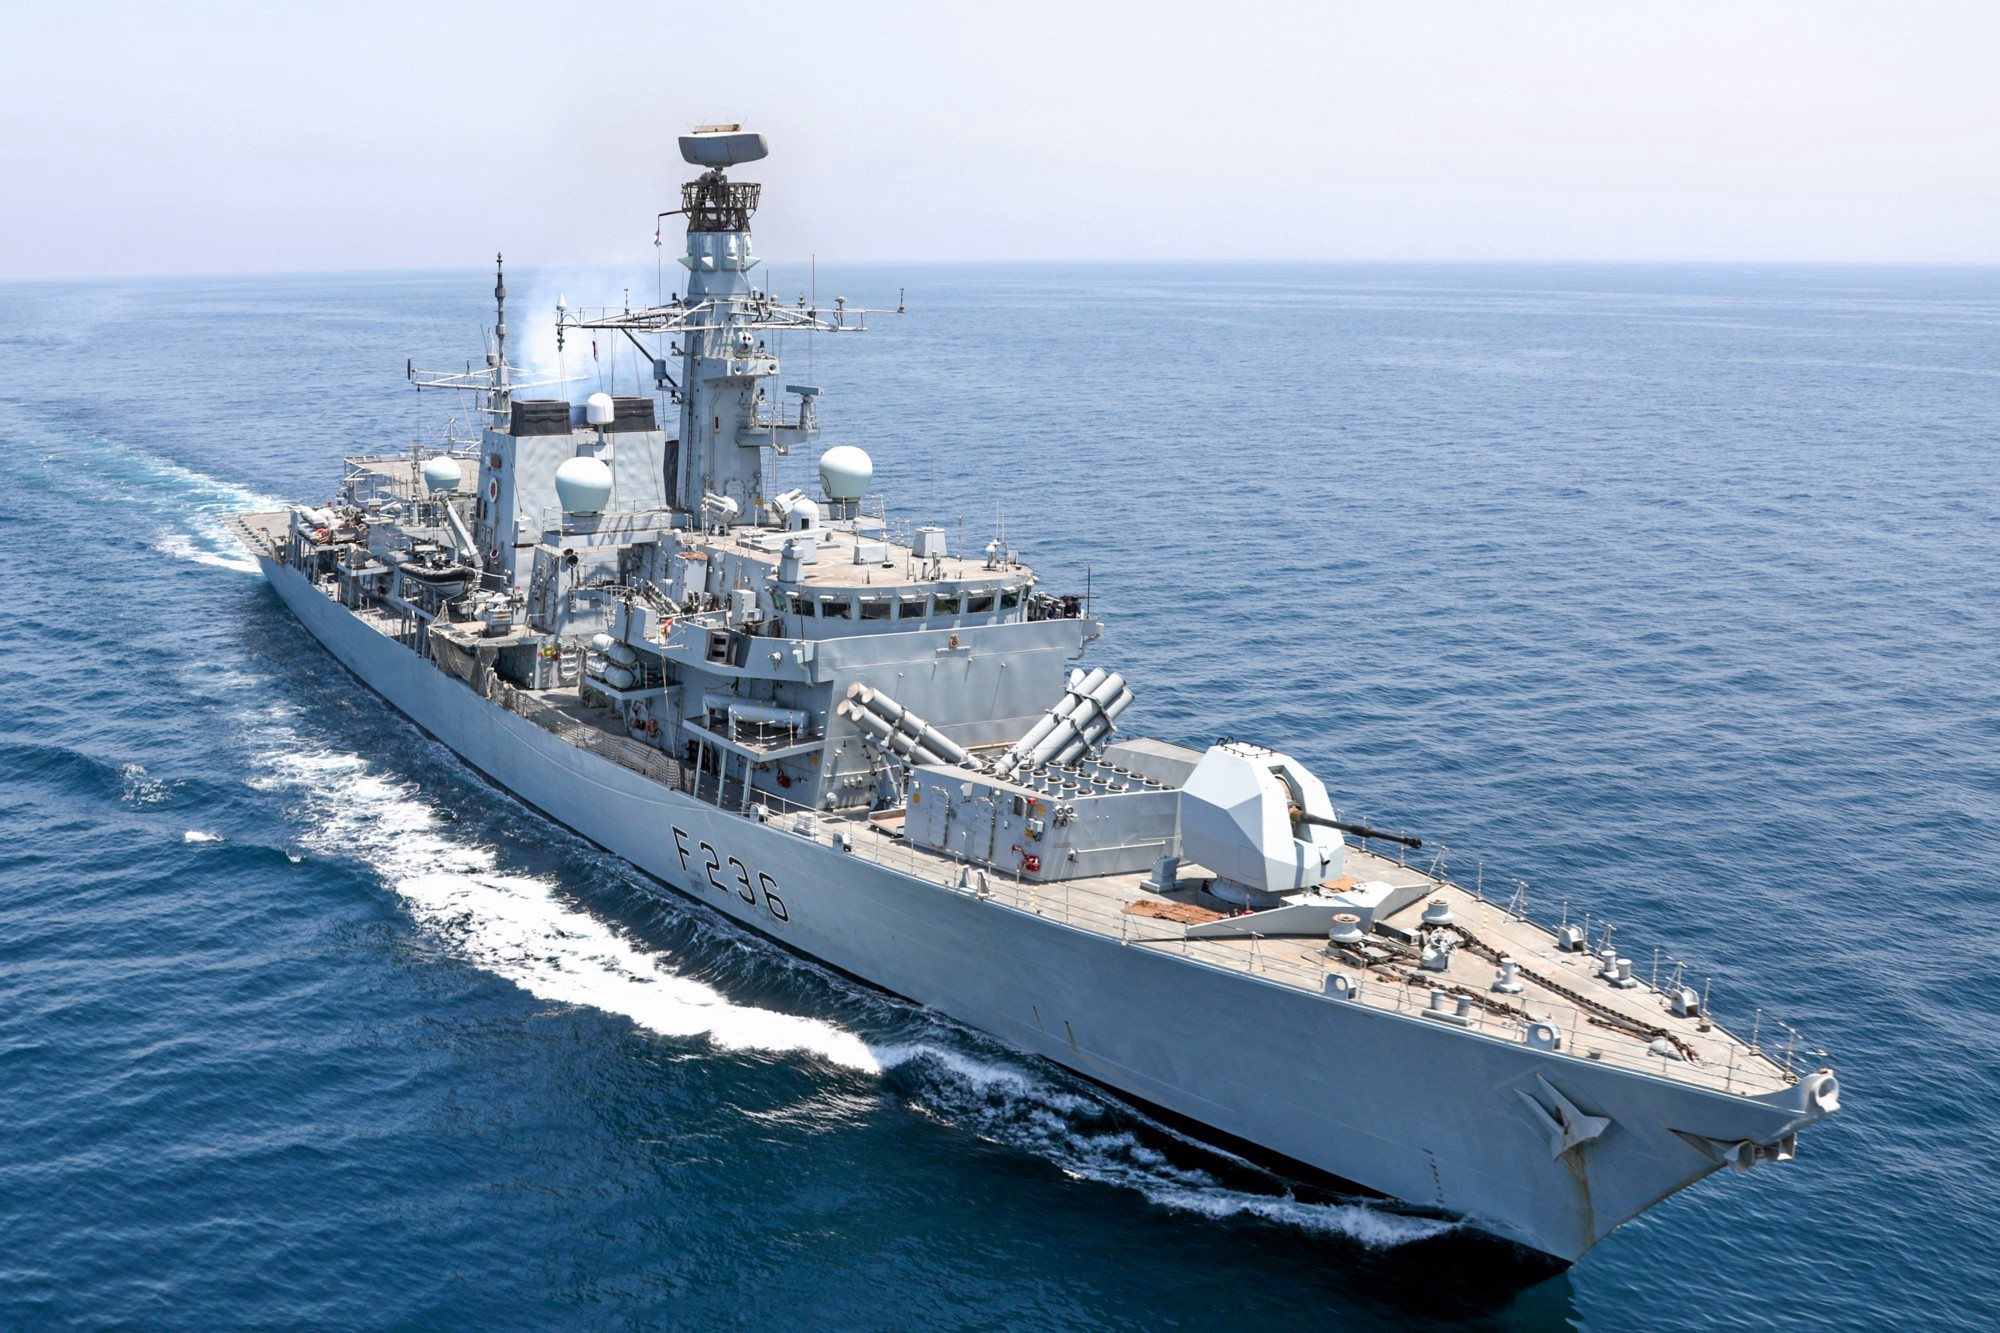 An image of HMS MONTROSE protecting international shipping lanes in the Gulf.